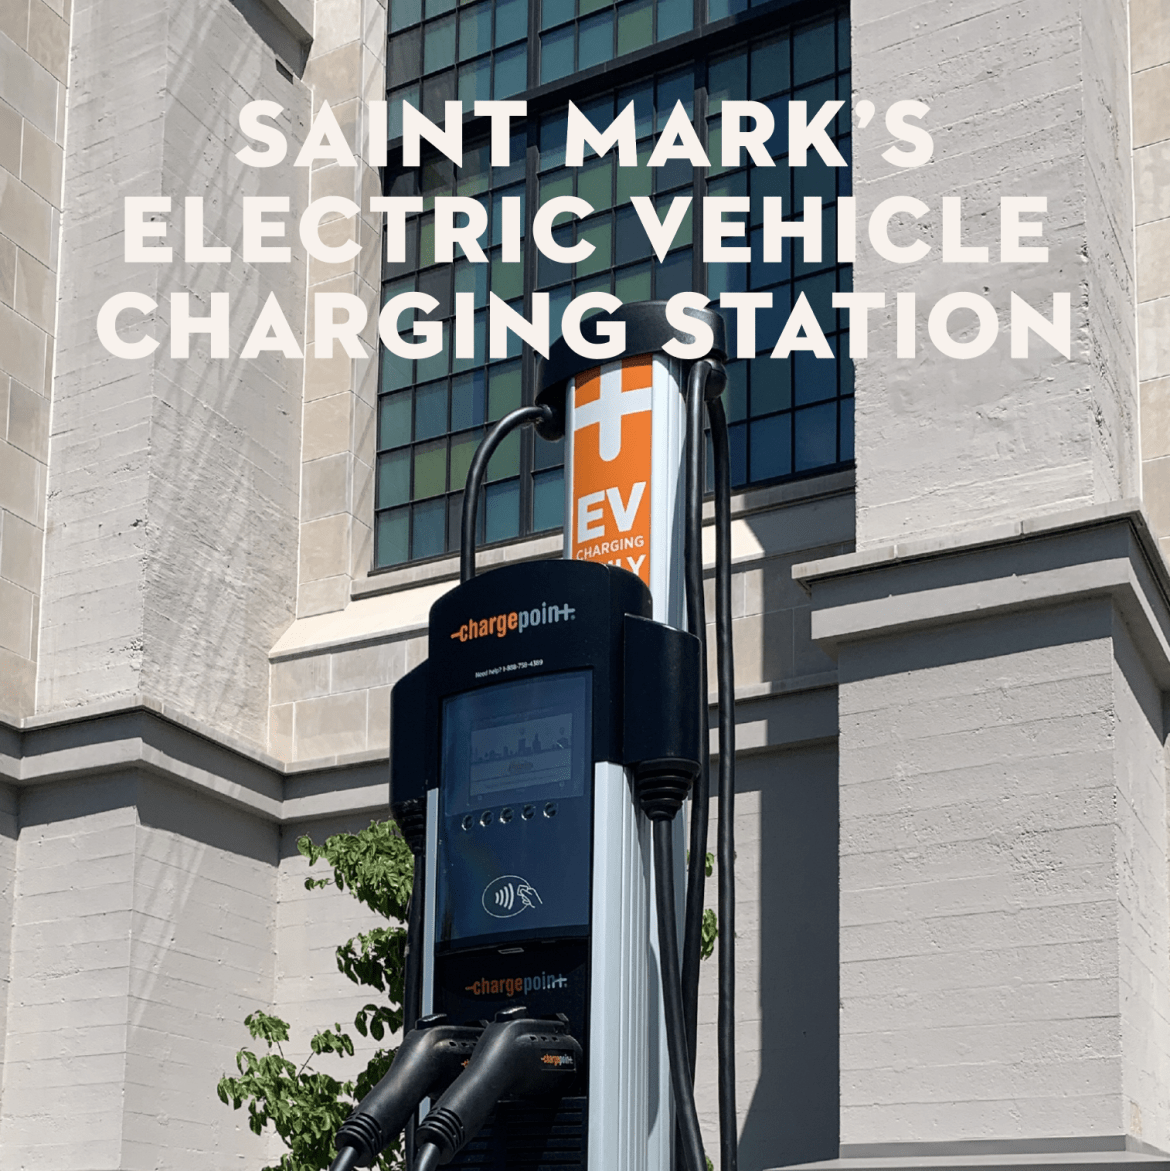 Dedication of the Cathedral's new Electric Vehicle Charging Station